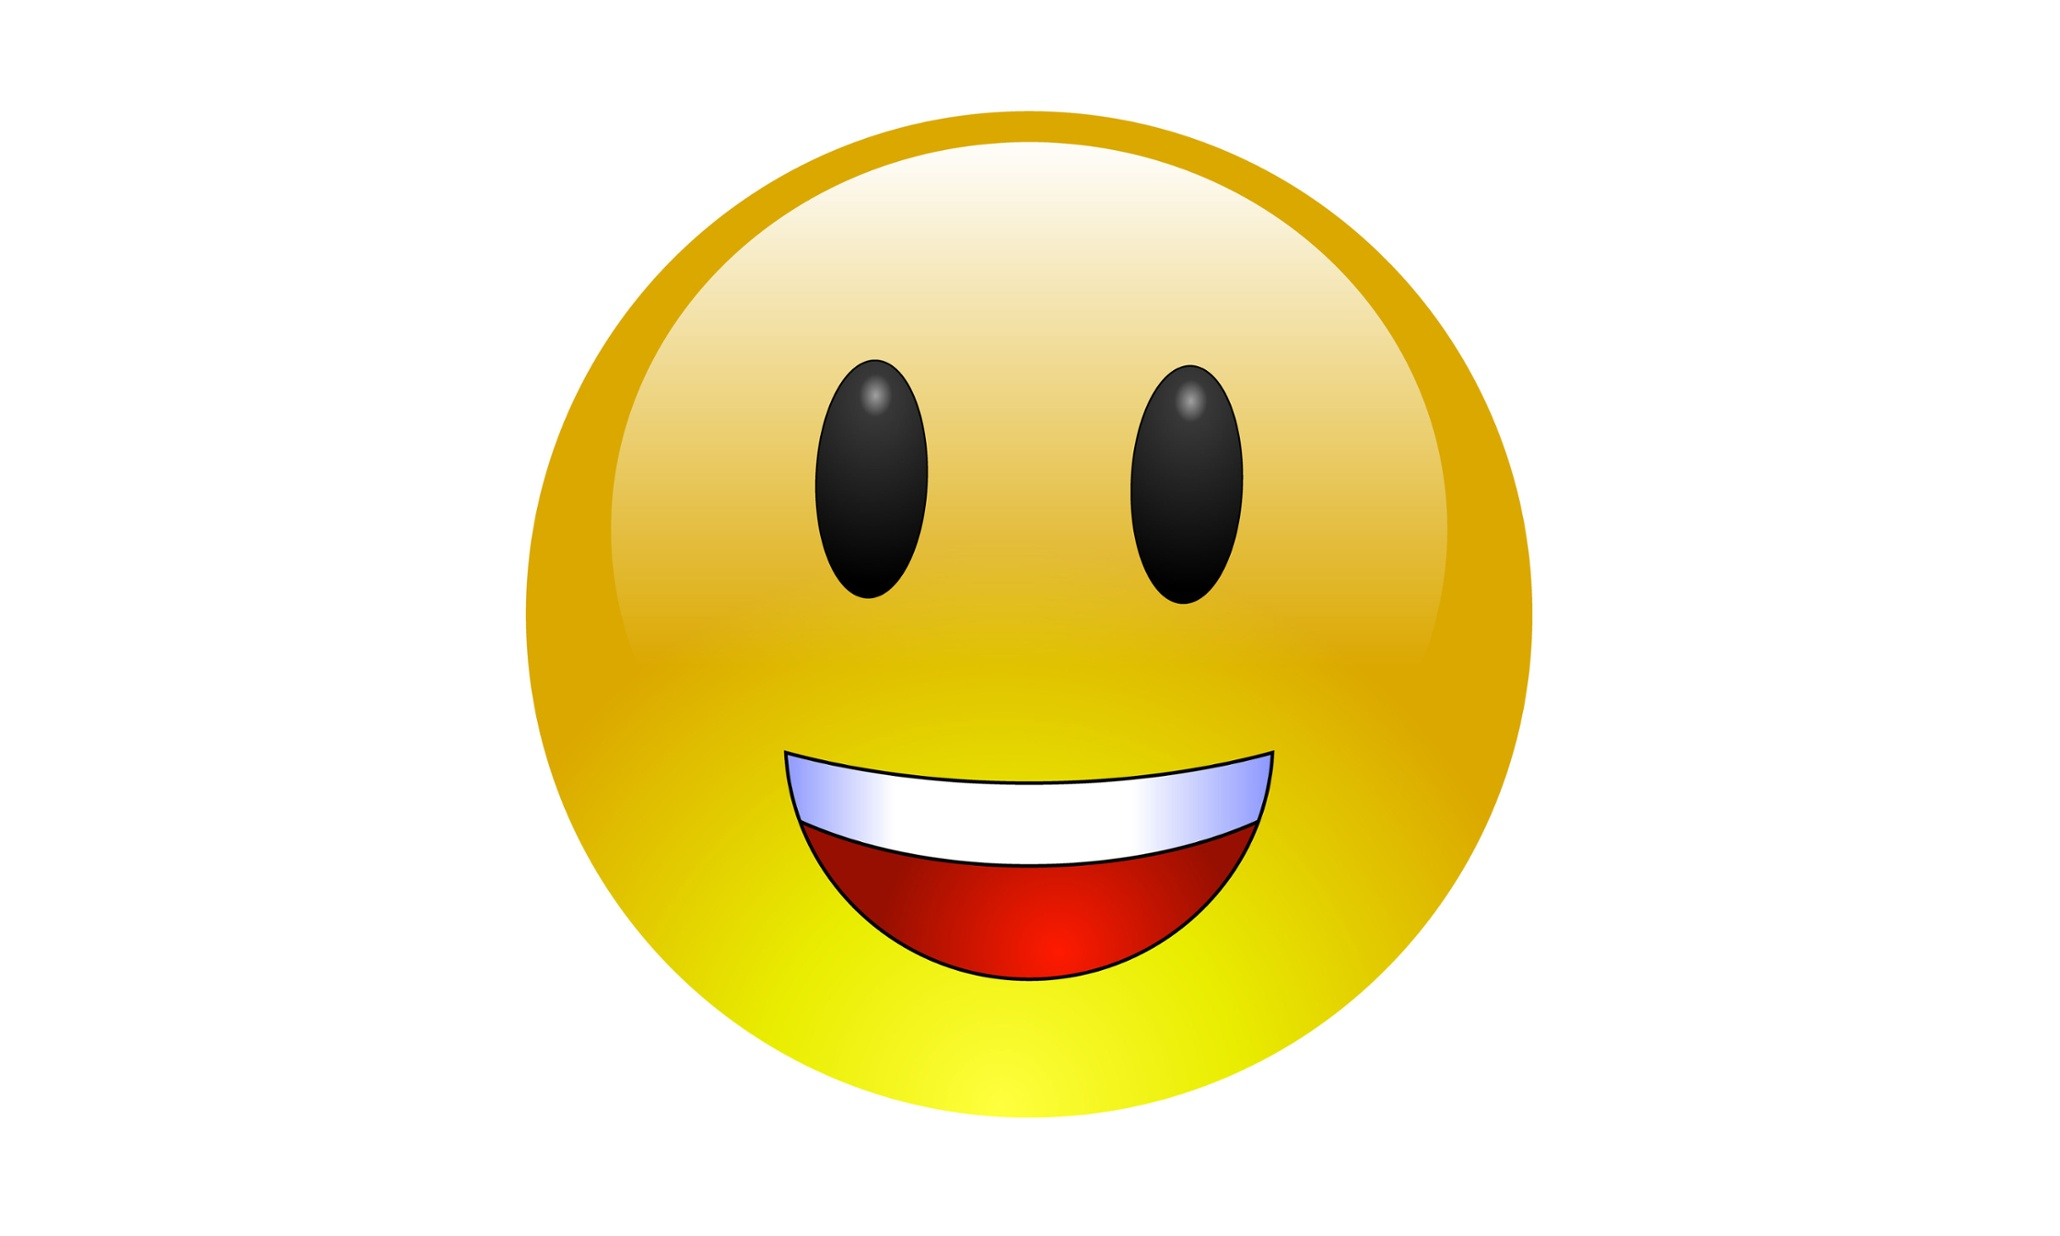 Smile: happy faces are top emoji choice | News | The Guardian